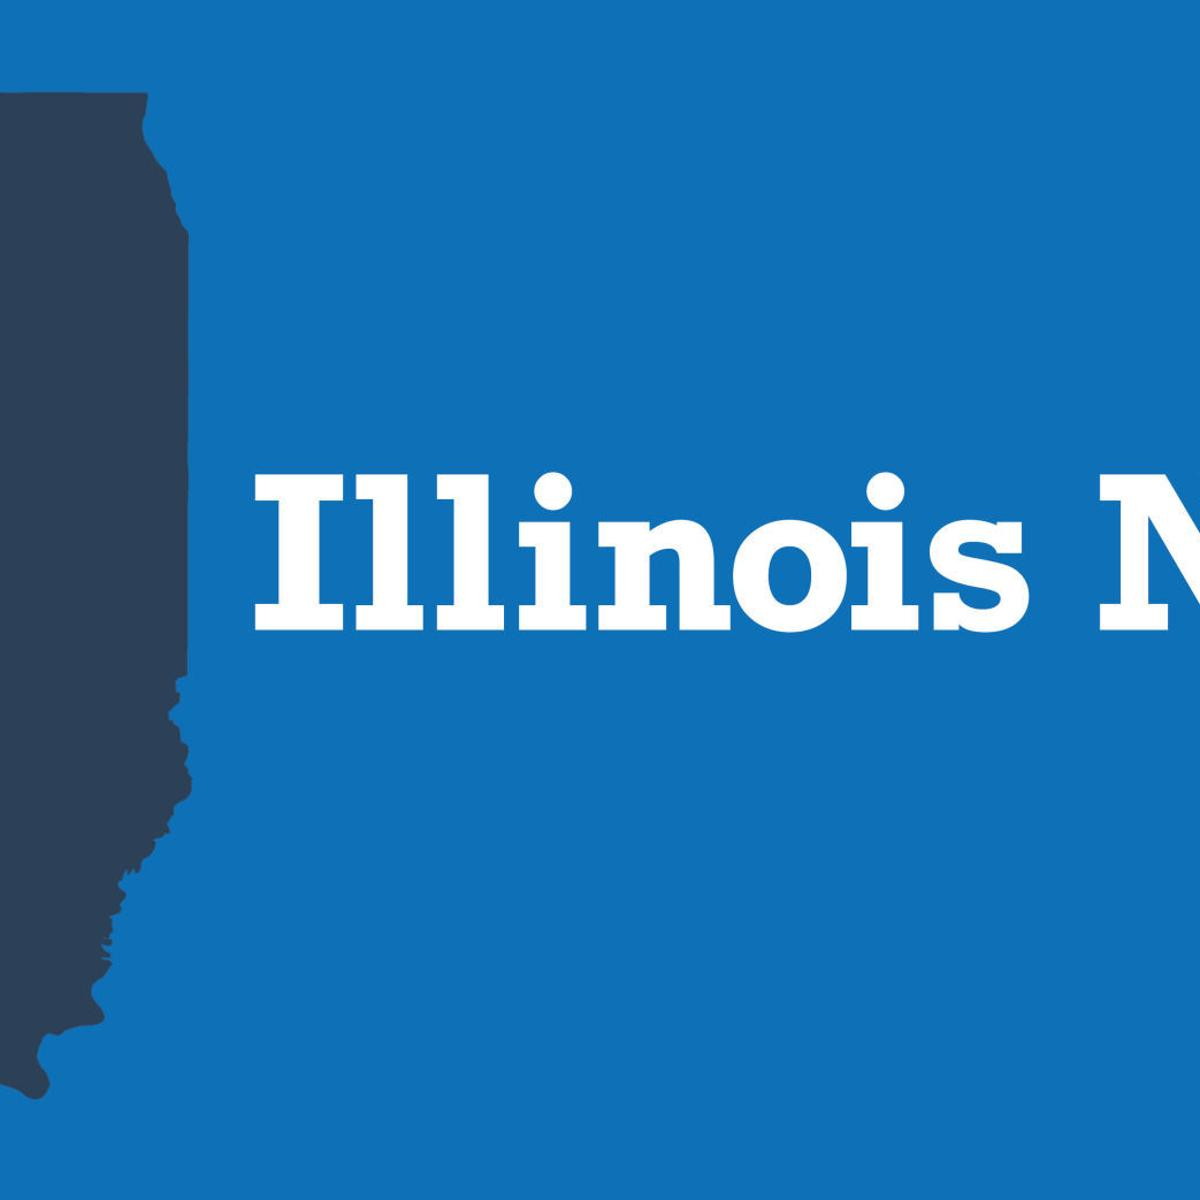 26 Illinois counties have passed 'gun sanctuary' resolutions